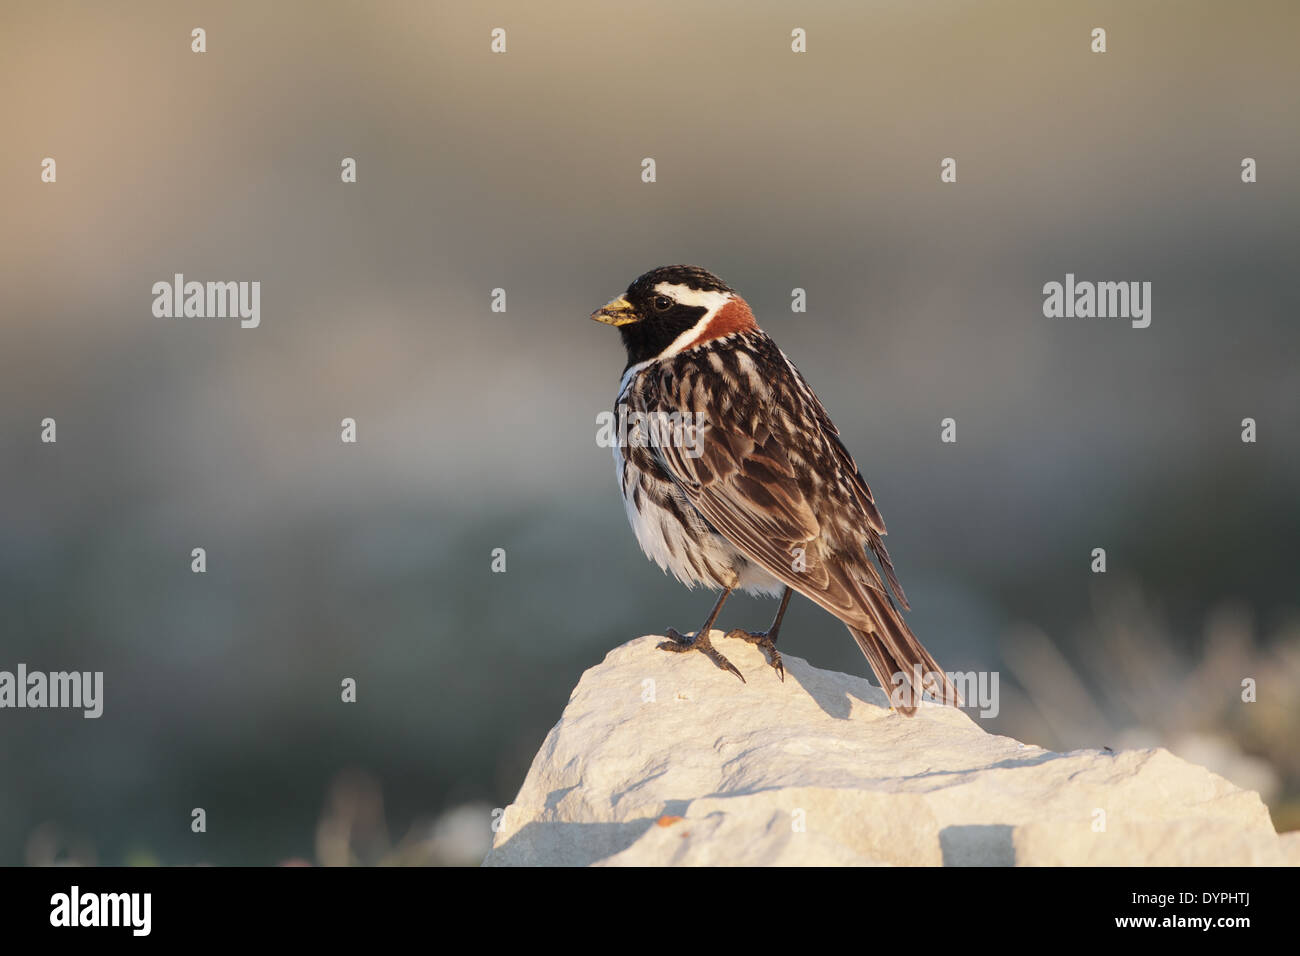 Lapland Longspur (Bunting), Calcarius lapponicus, male on breeding grounds - Stock Image